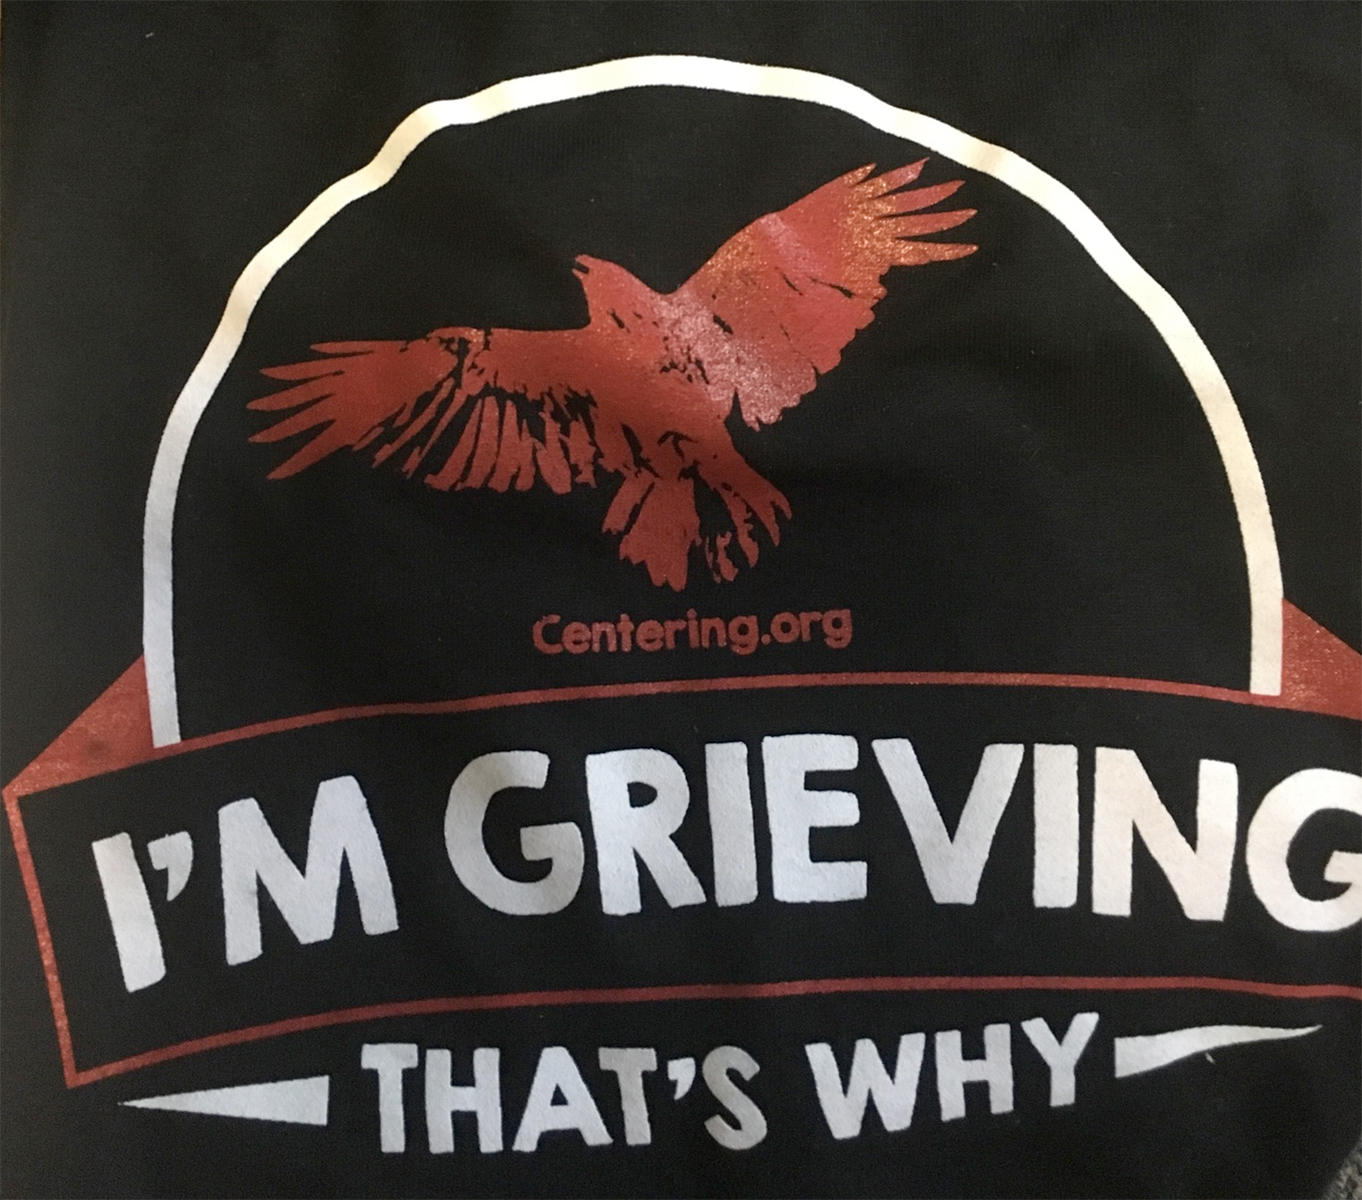 I'm Grieving That's Why t-shirt